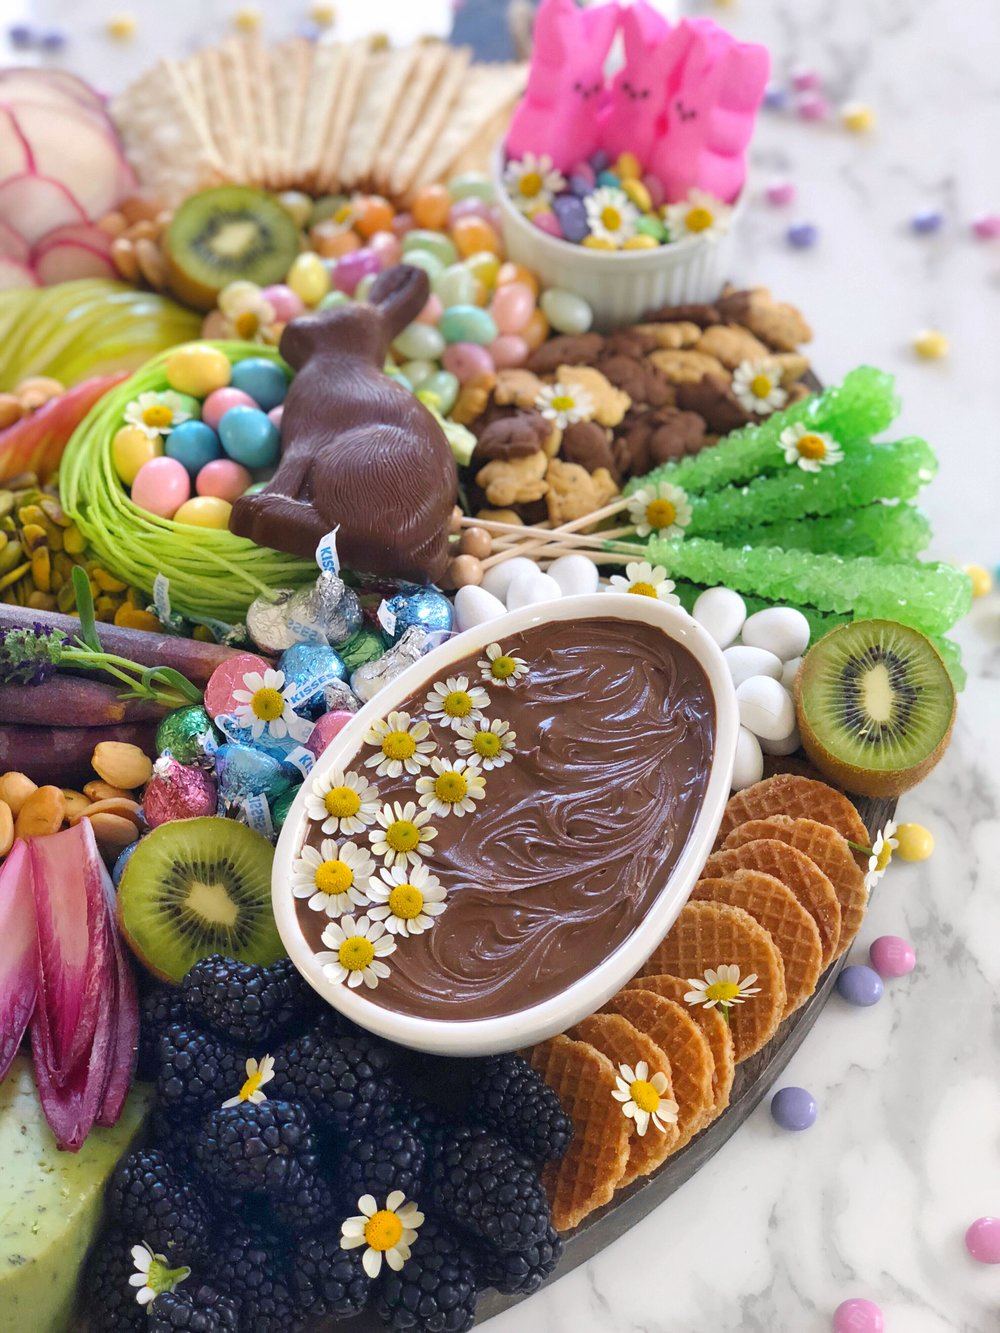 Easter Cheese Plate 3 Sweet Peeps Cadbury